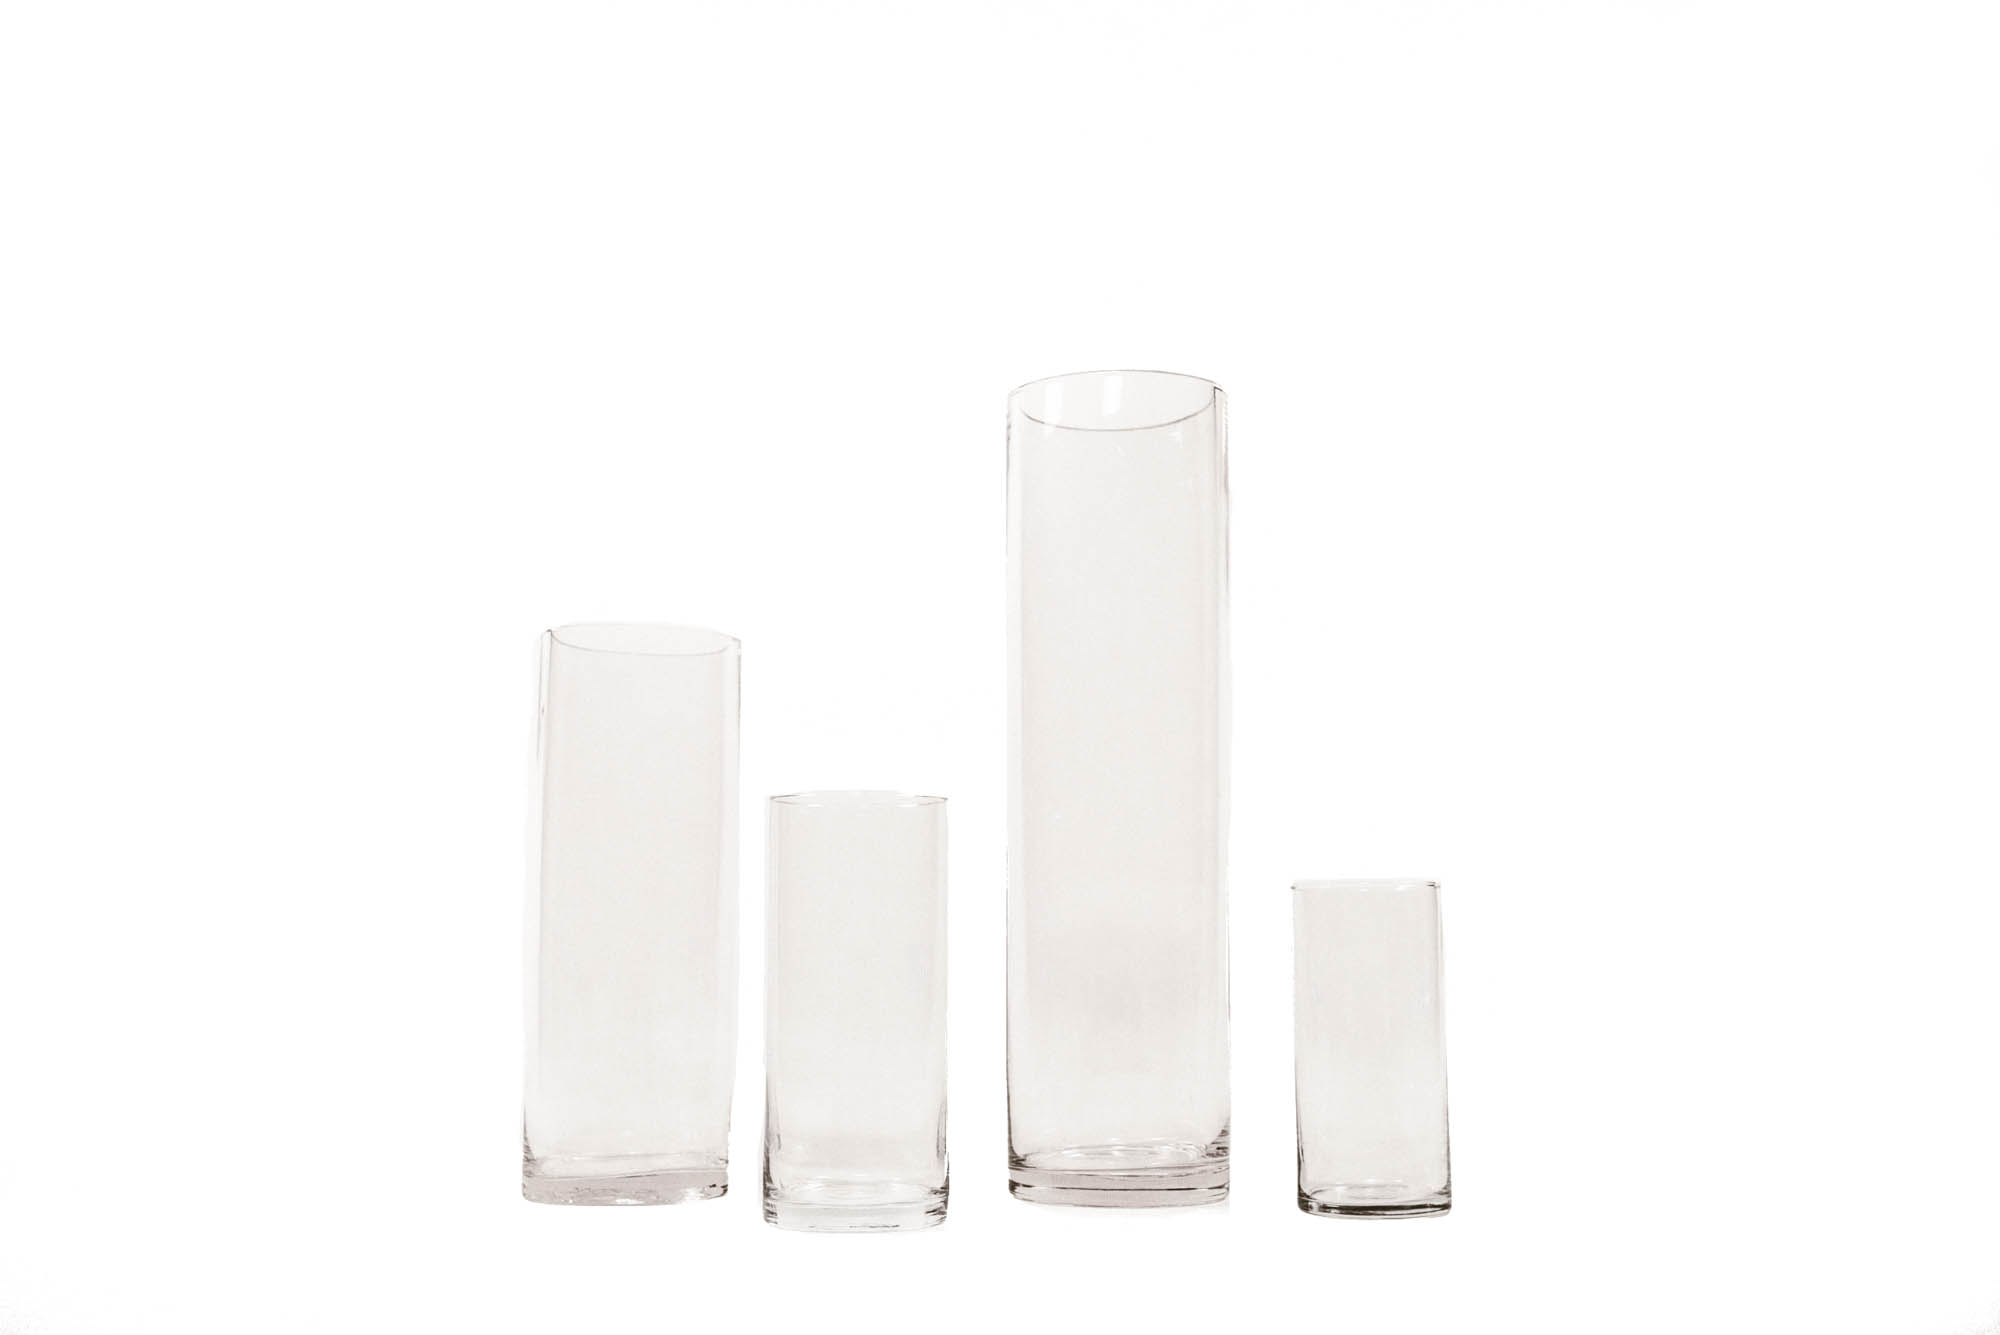 vase plastic tall large cylinder clear of glass set everythingbeauty info vases